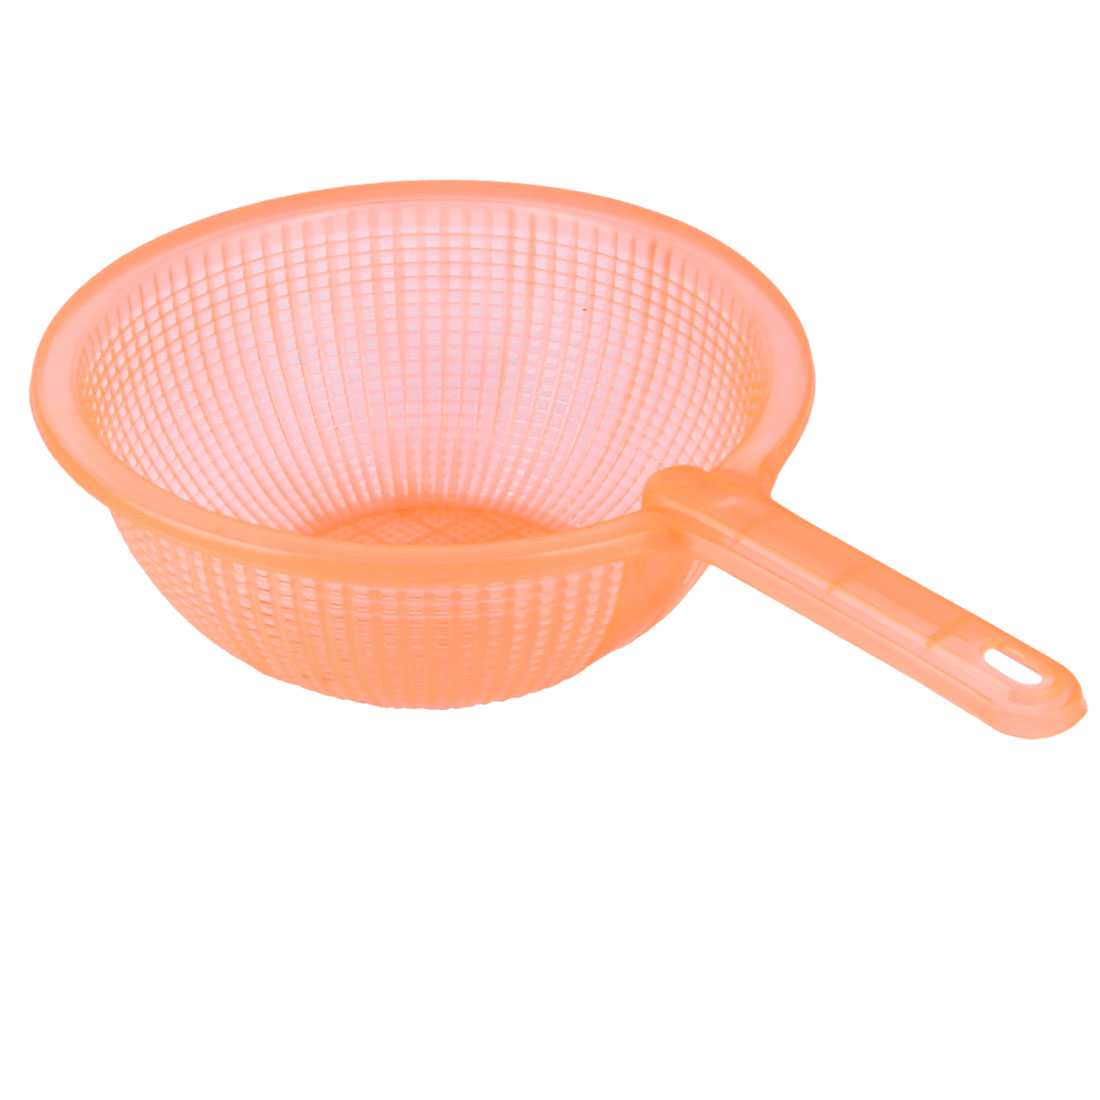 Kitchen Plastic Fruits Vegetables Rice Washing Wash Filter Strainer Colander Orange